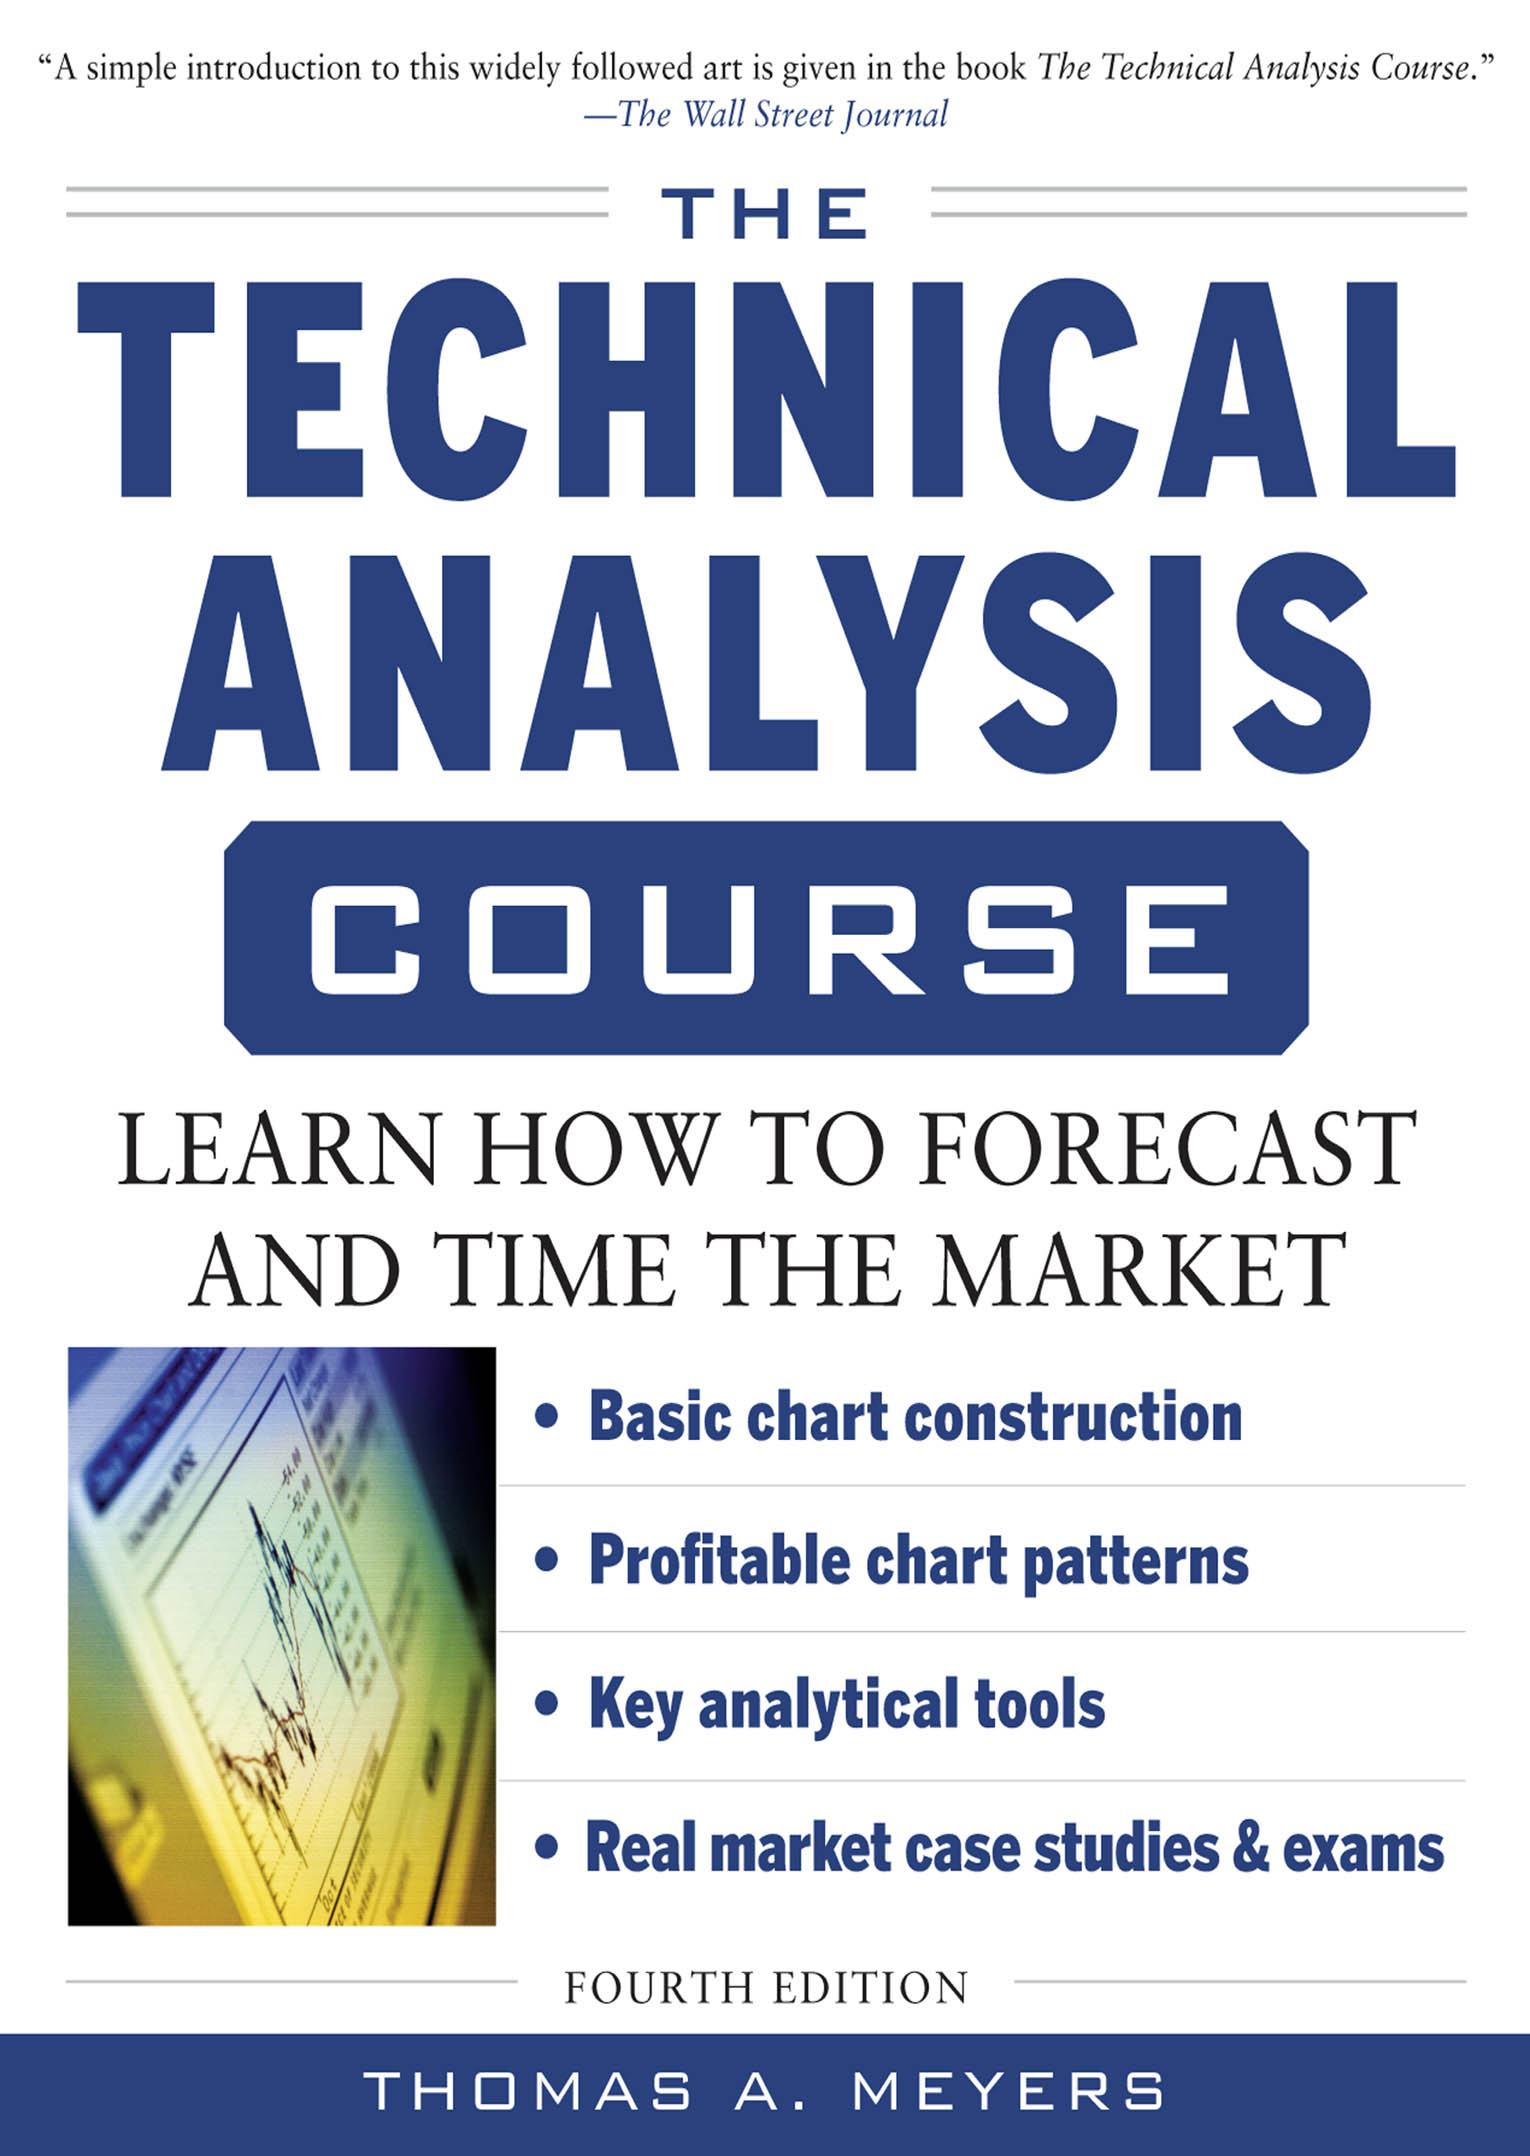 Download Ebook The Technical Analysis Course, Fourth Edition: Learn How to Forecast and Time the Market (4th ed.) by Thomas Meyers Pdf